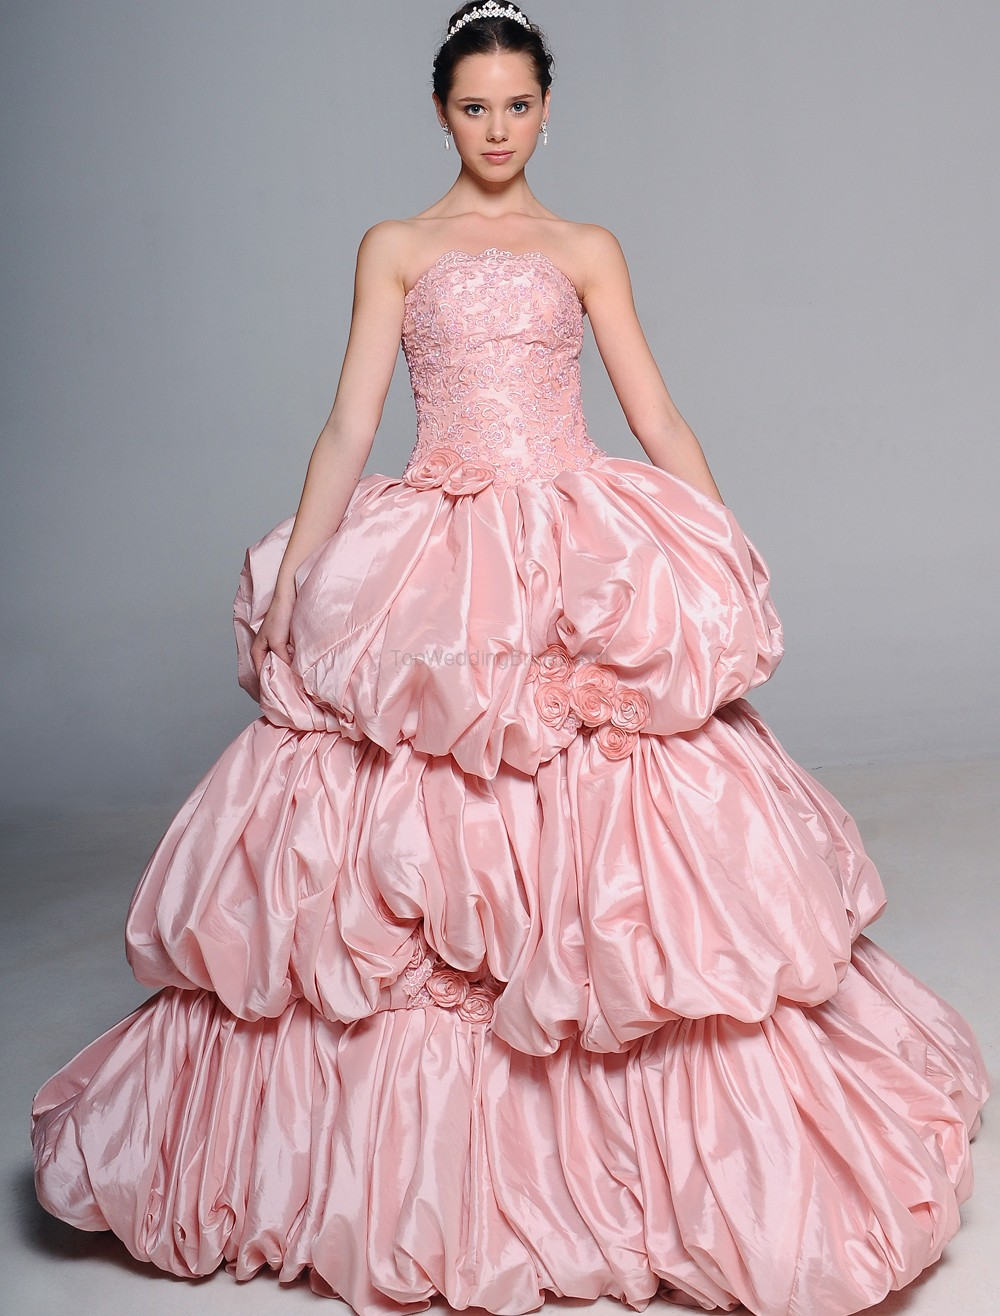 Pink wedding dresses on pinterest pink wedding gowns for Fuchsia dress for wedding